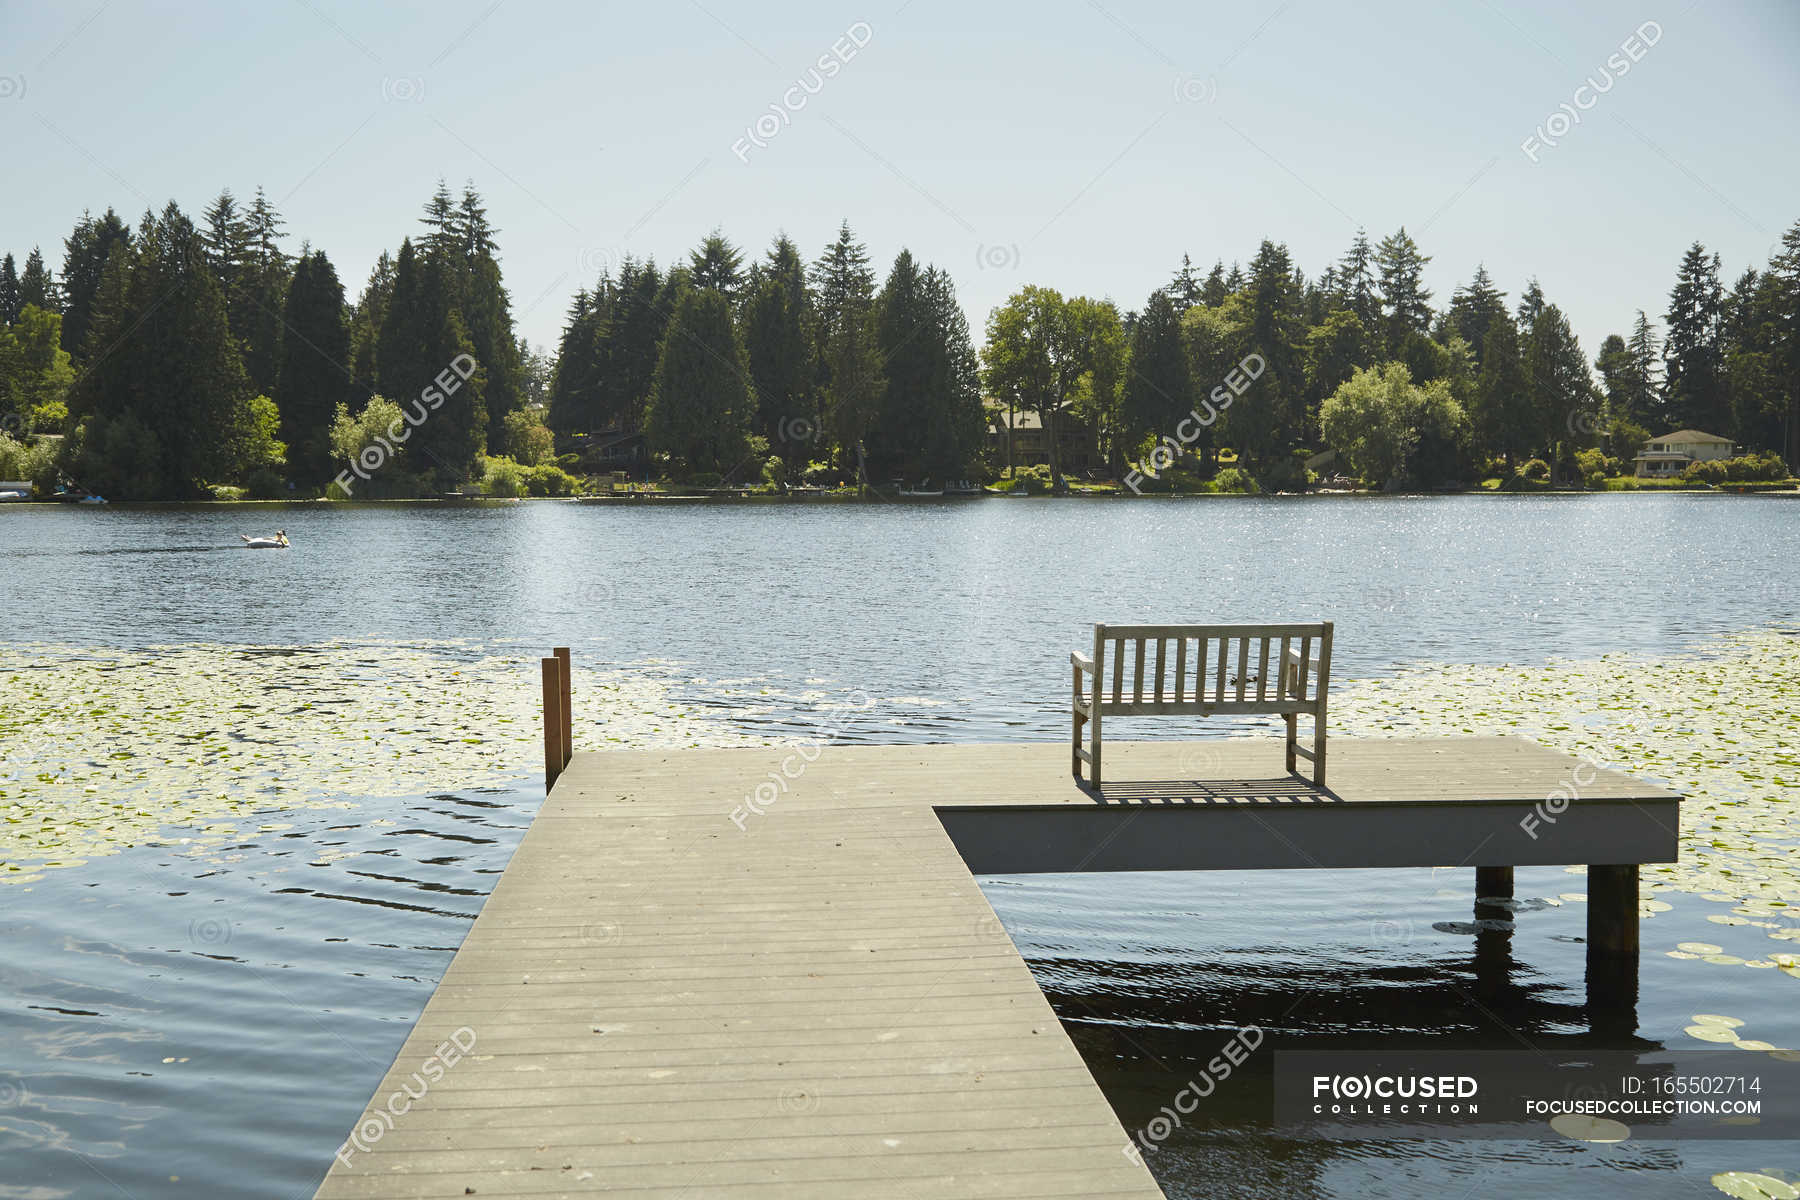 Bench at end of pier — clear sky, united states of america